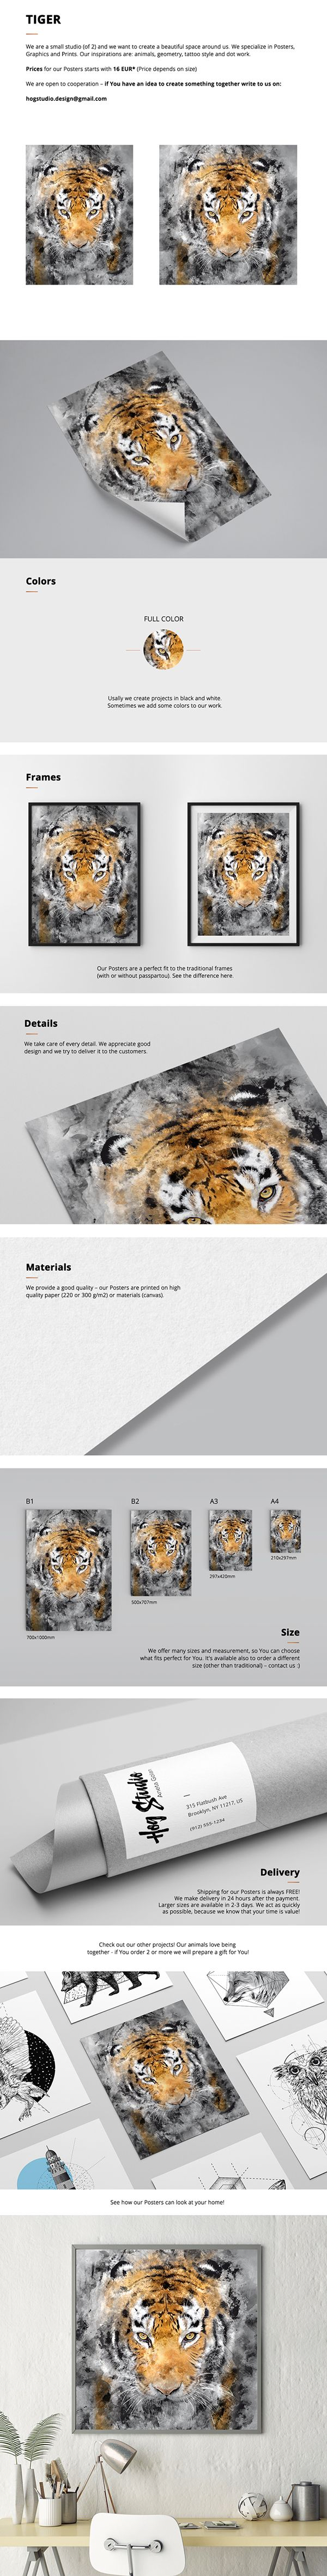 """Poster """"Tiger"""" We create a beautiful space around us. We specialize in Posters, Graphics and Prints. Contact: hogstudio.design@gmail.com"""